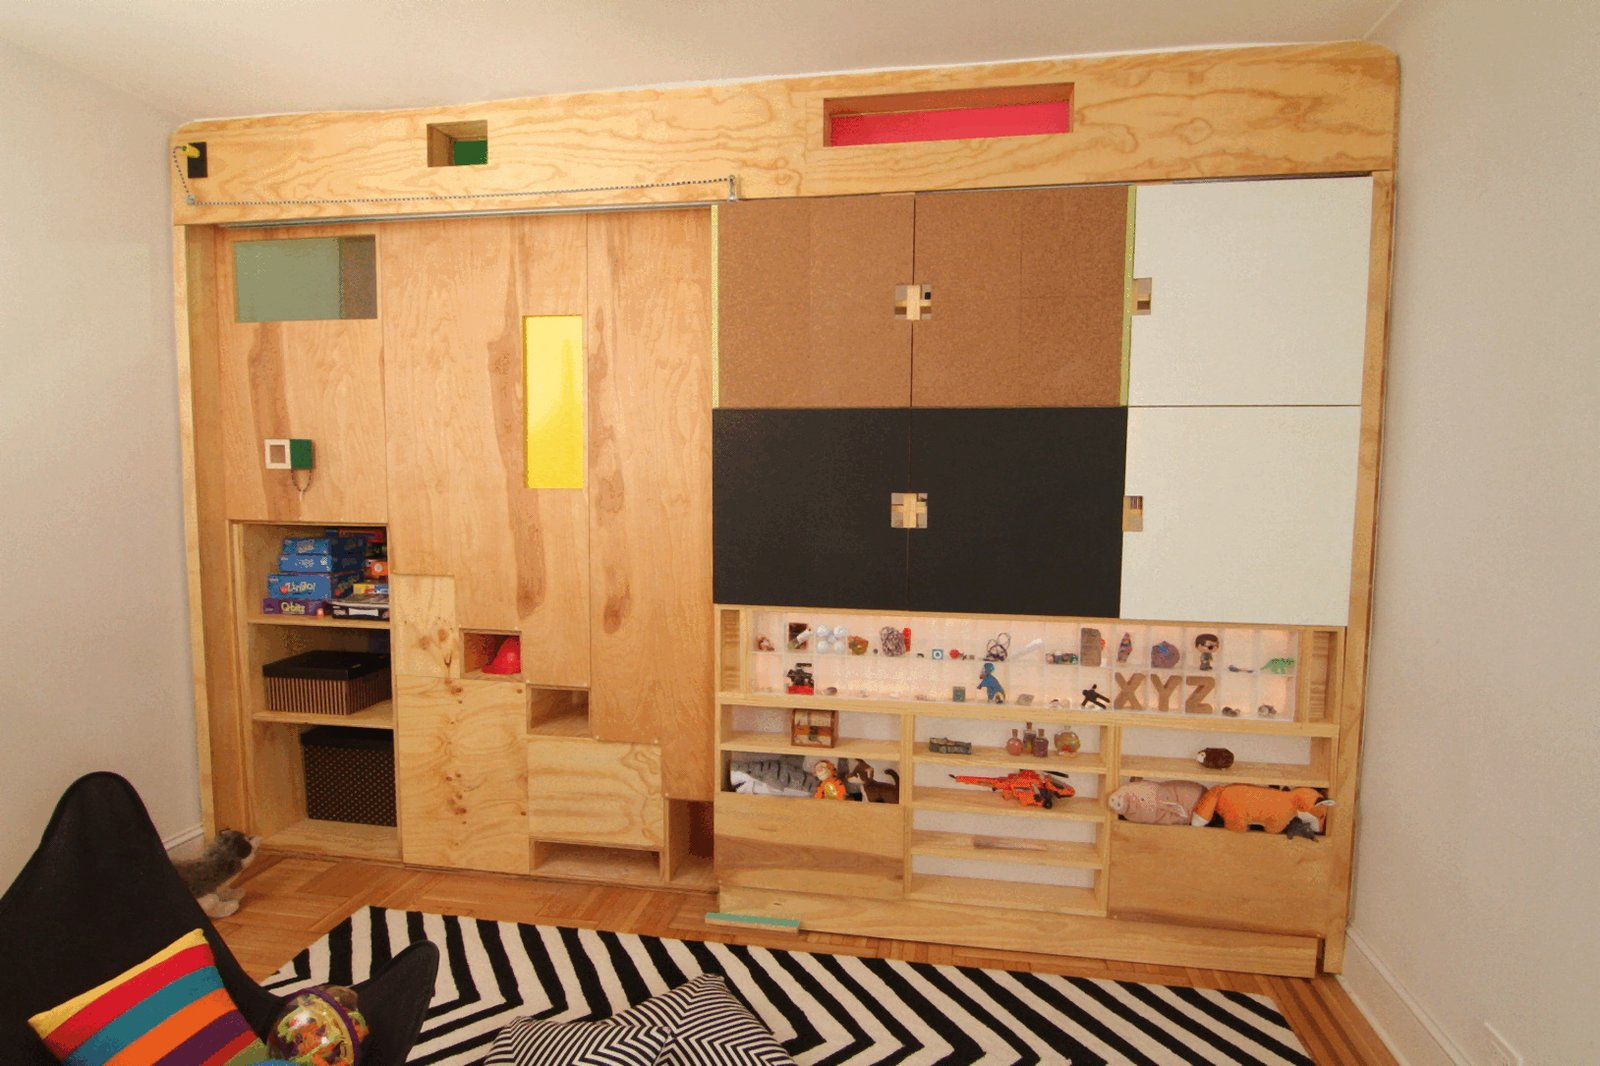 Kids Room, Playroom Room Type, Chair, Bookcase, Shelves, Storage, Boy Gender, Pre-Teen Age, Medium Hardwood Floor, and Neutral Gender Step-storage and moving divider panel as seen from playroom with storage and usable surfaces  LO Residence Playroom/Bedroom